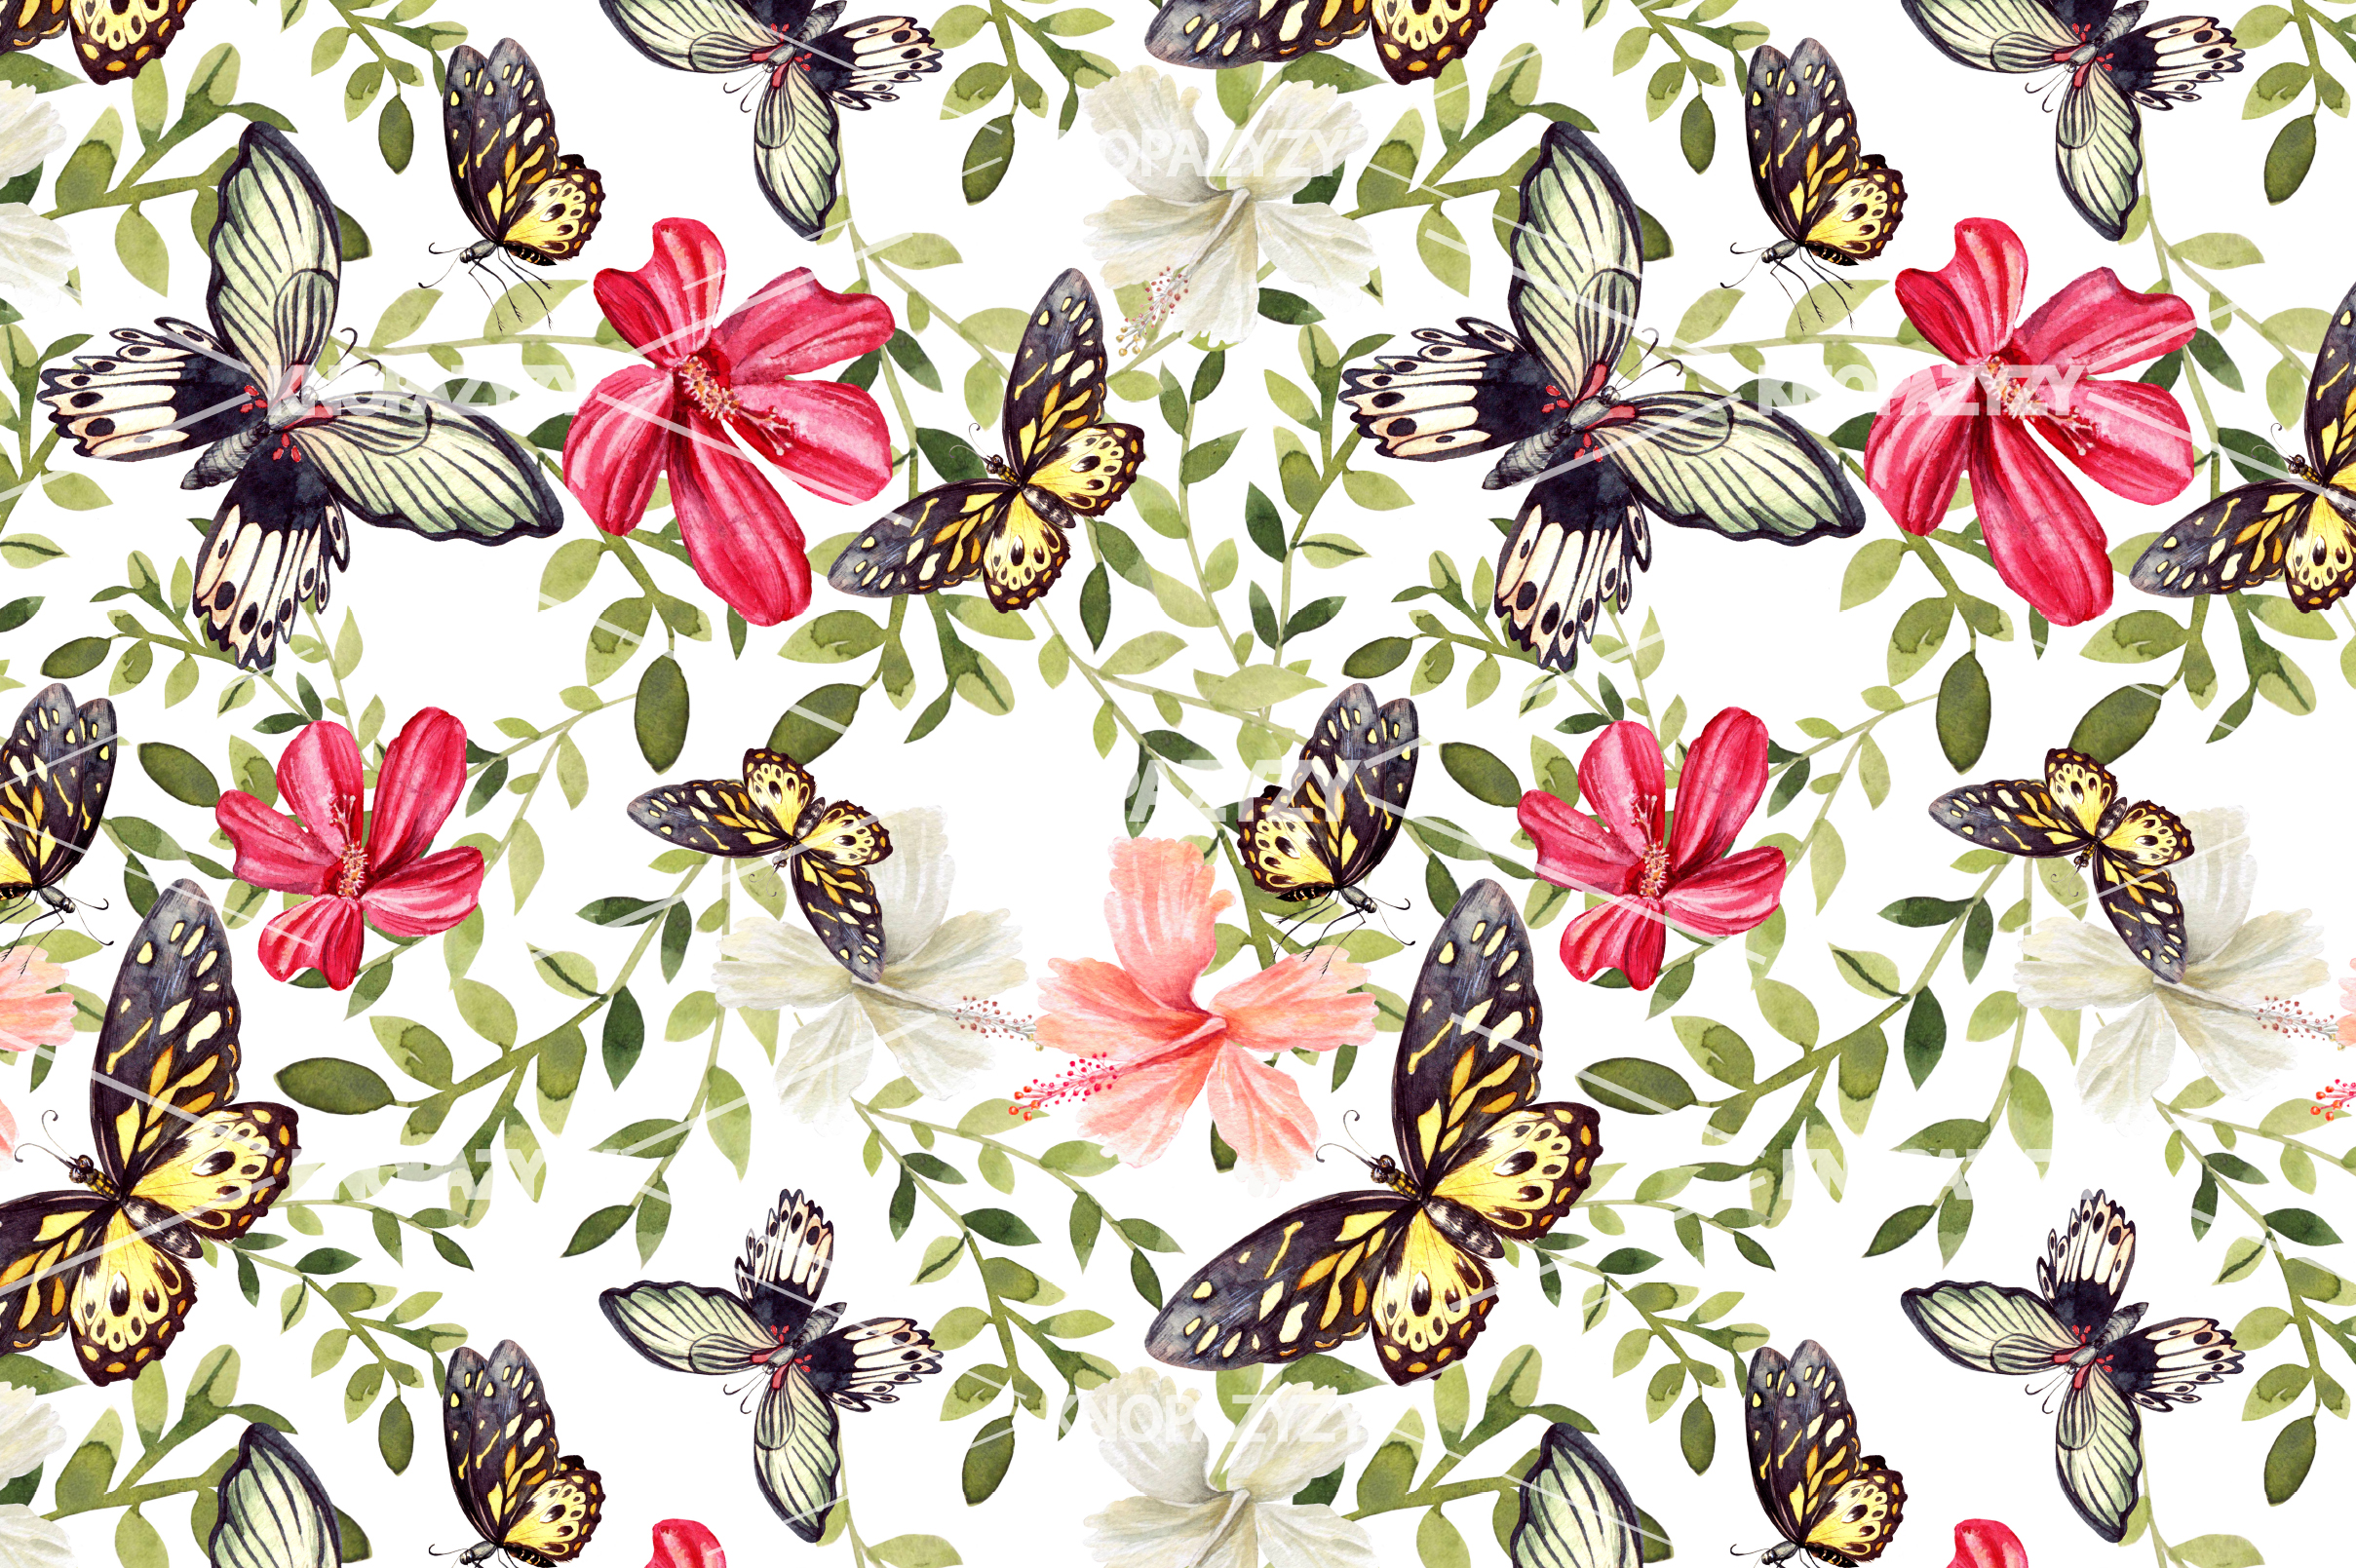 14 Hand drawn watercolor patterns example image 9